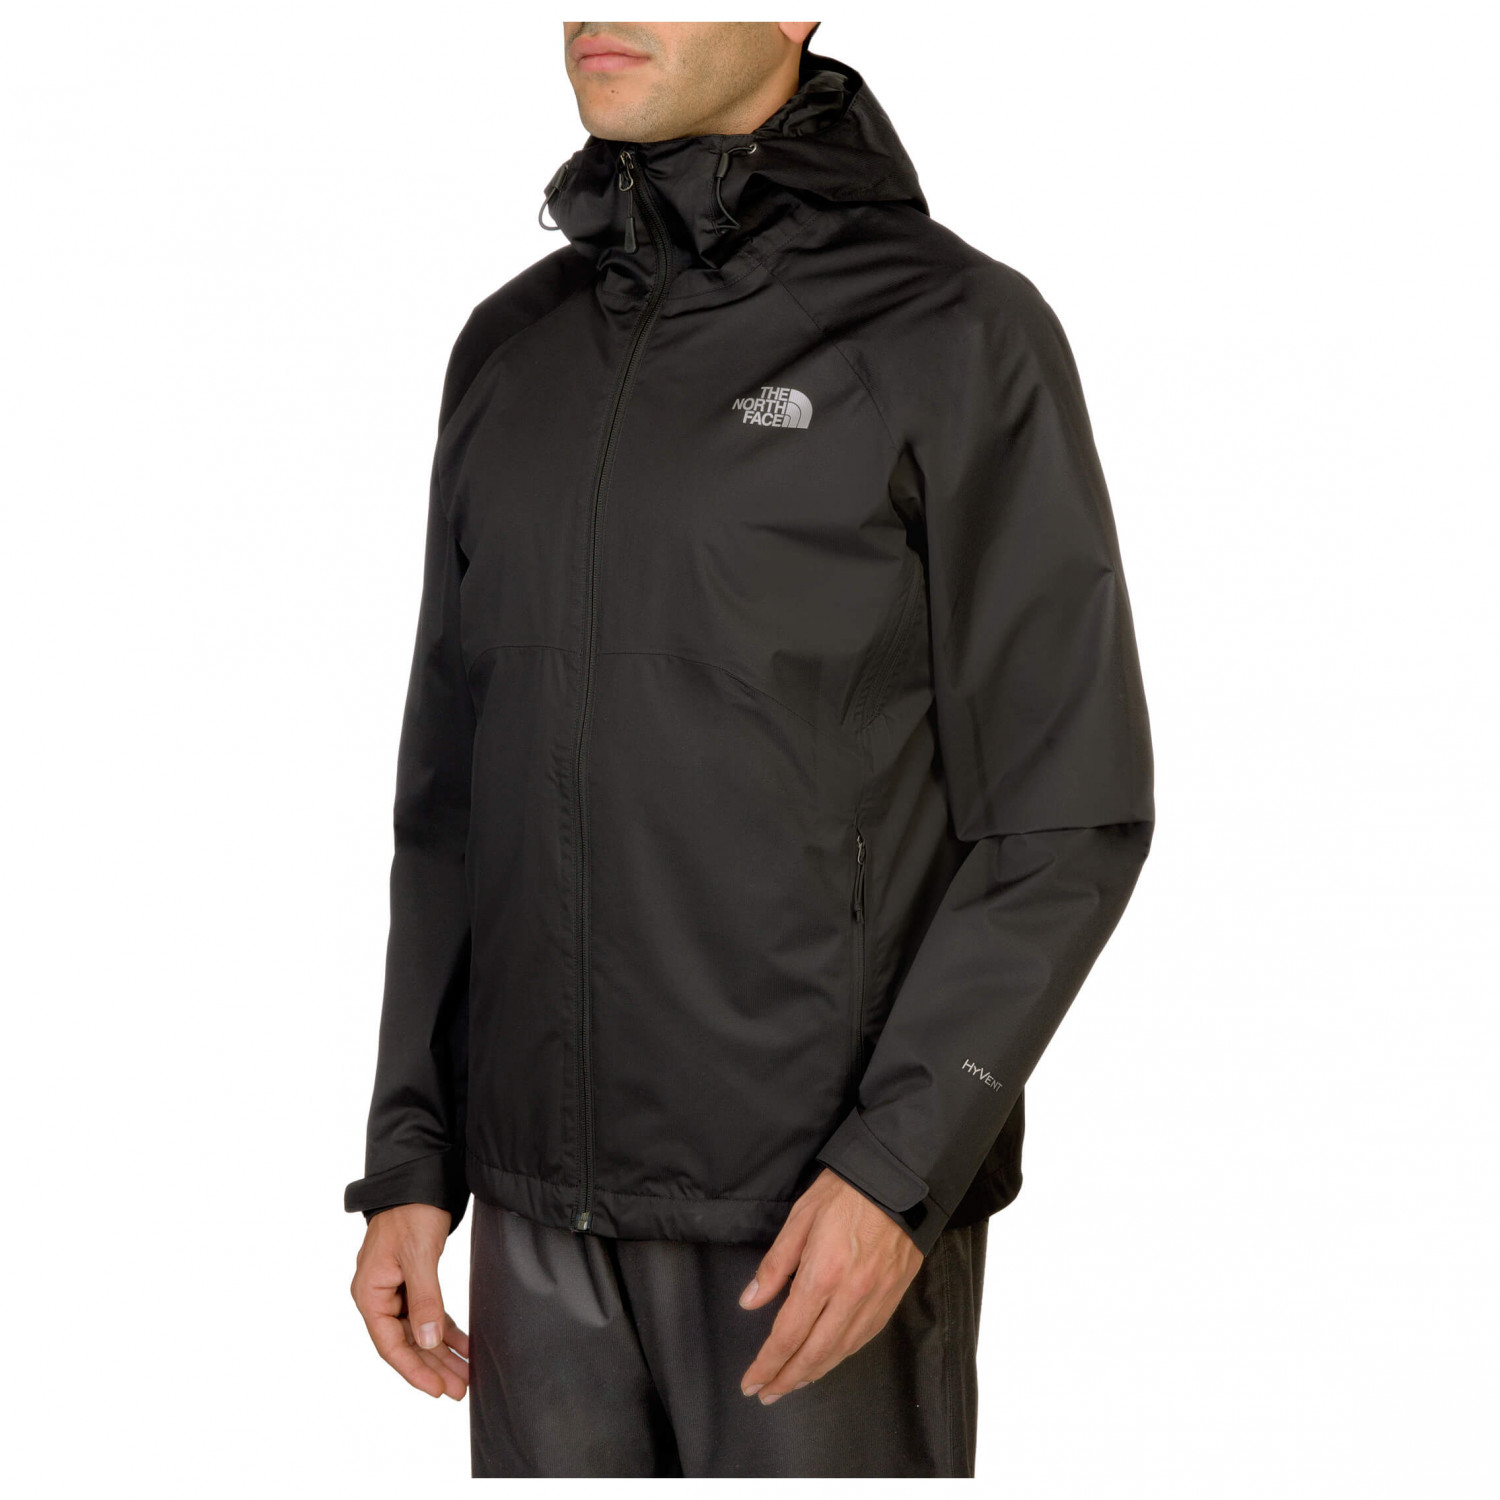 Giacca Jacket Acquista The North Sequence Hardshell Uomo Face 6fxftqnaHI 29c590e97888